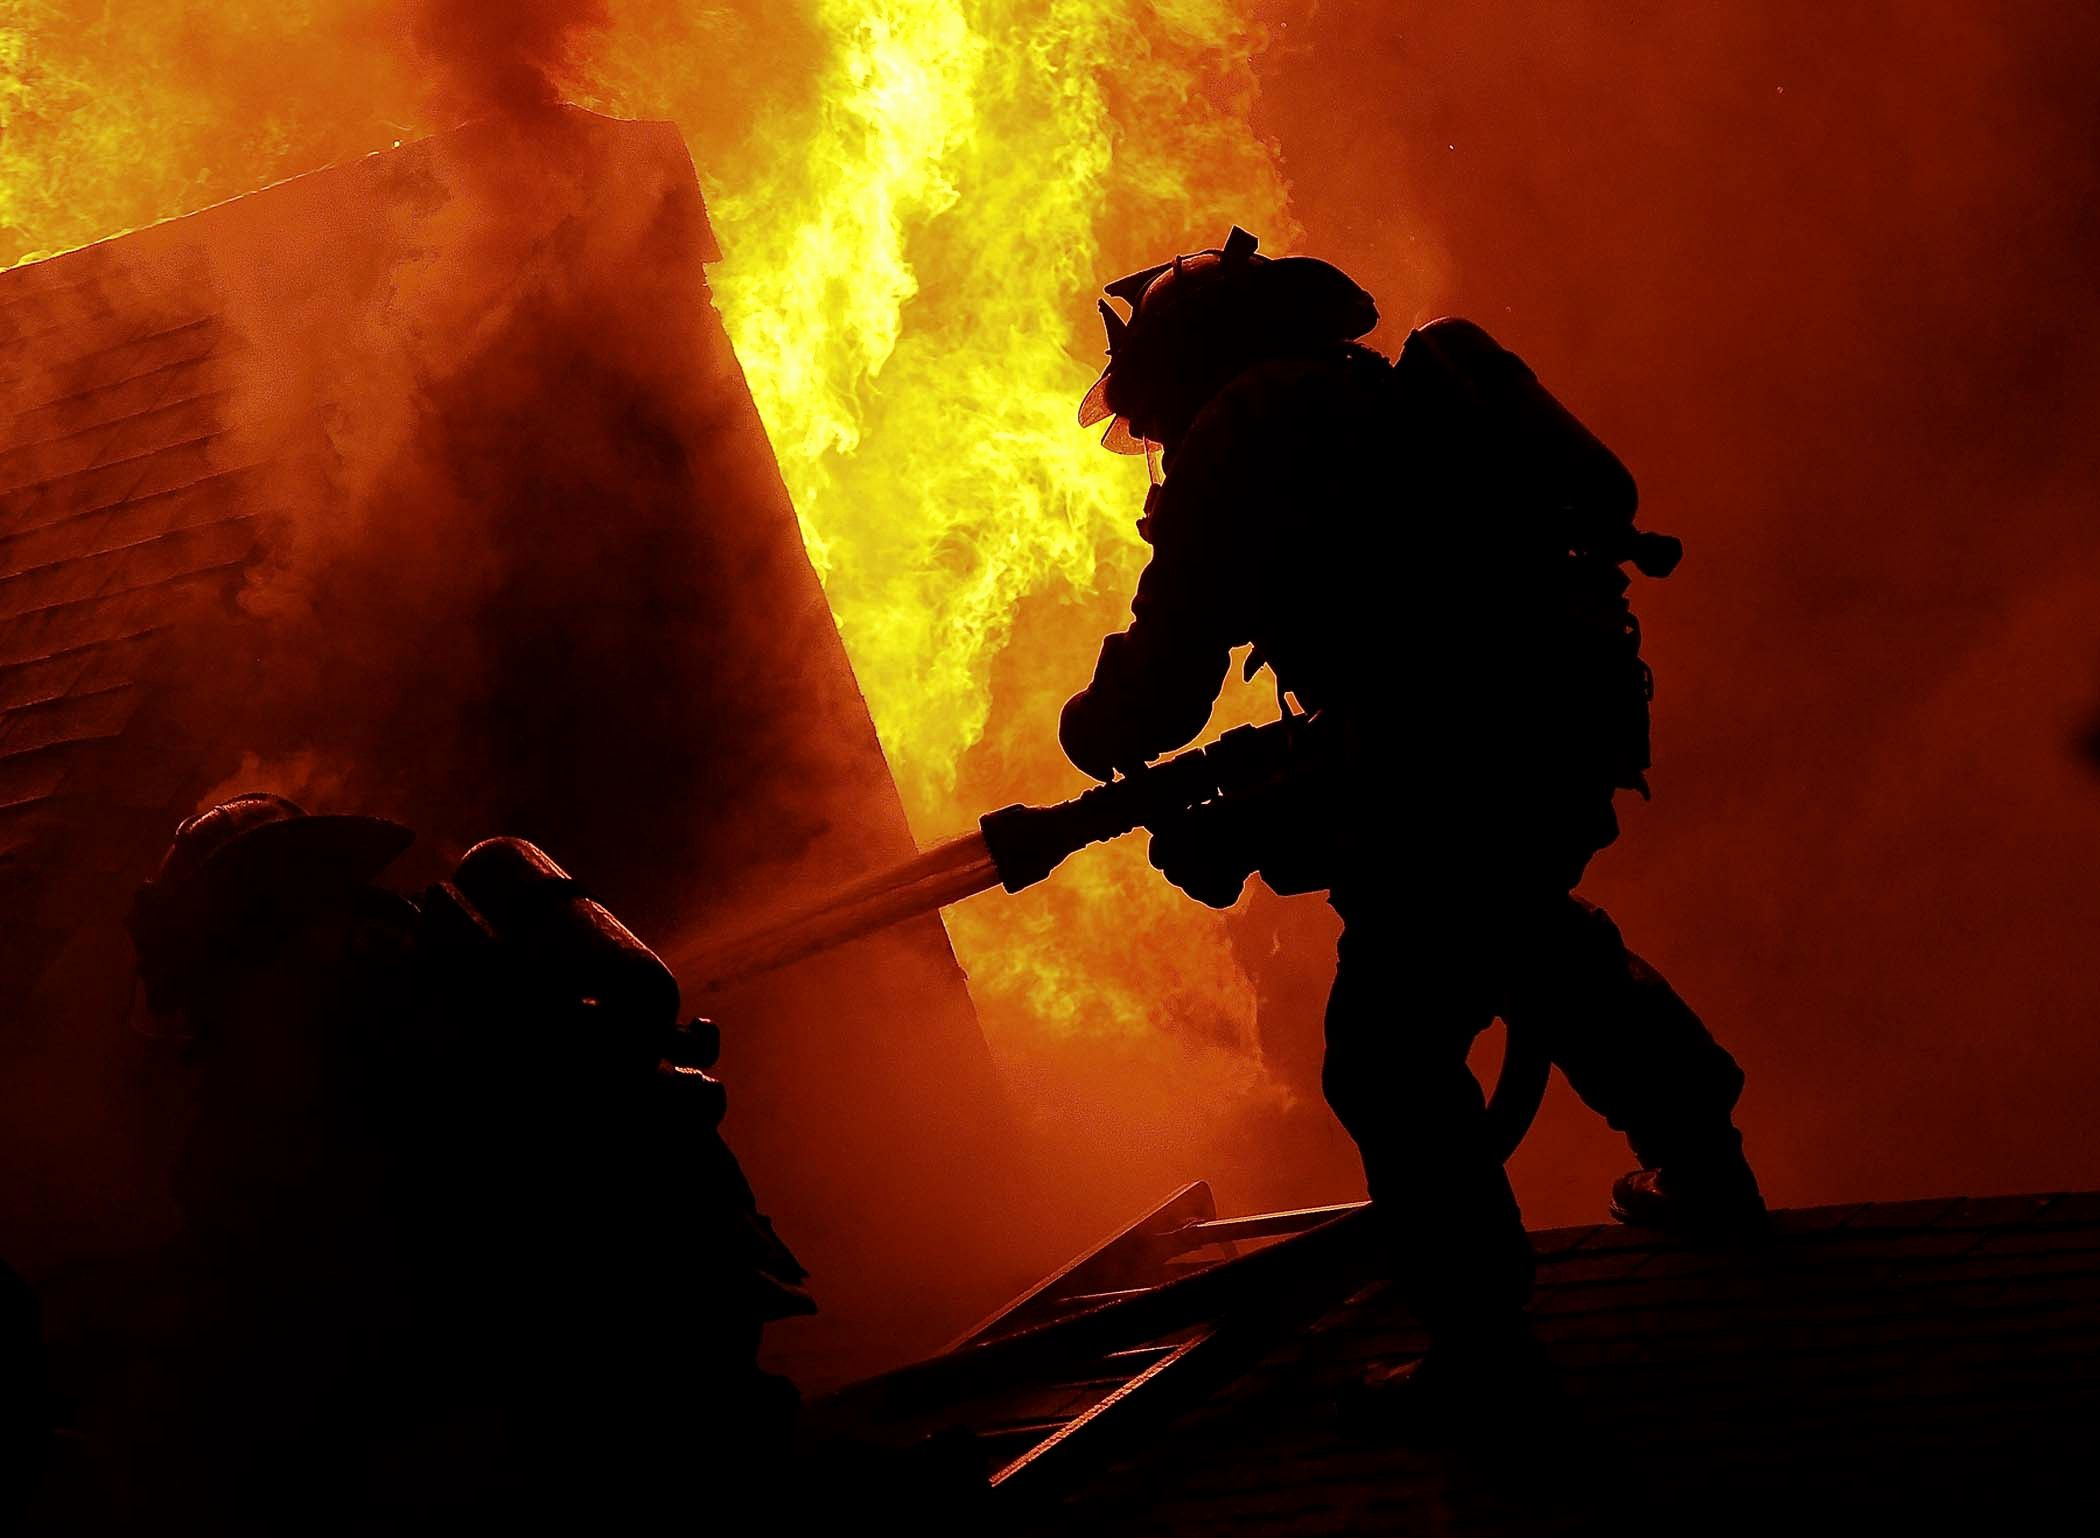 60 Hd Firefighter Wallpapers On Wallpaperplay Firefighter Firefighter Pictures Navy Seal Wallpaper